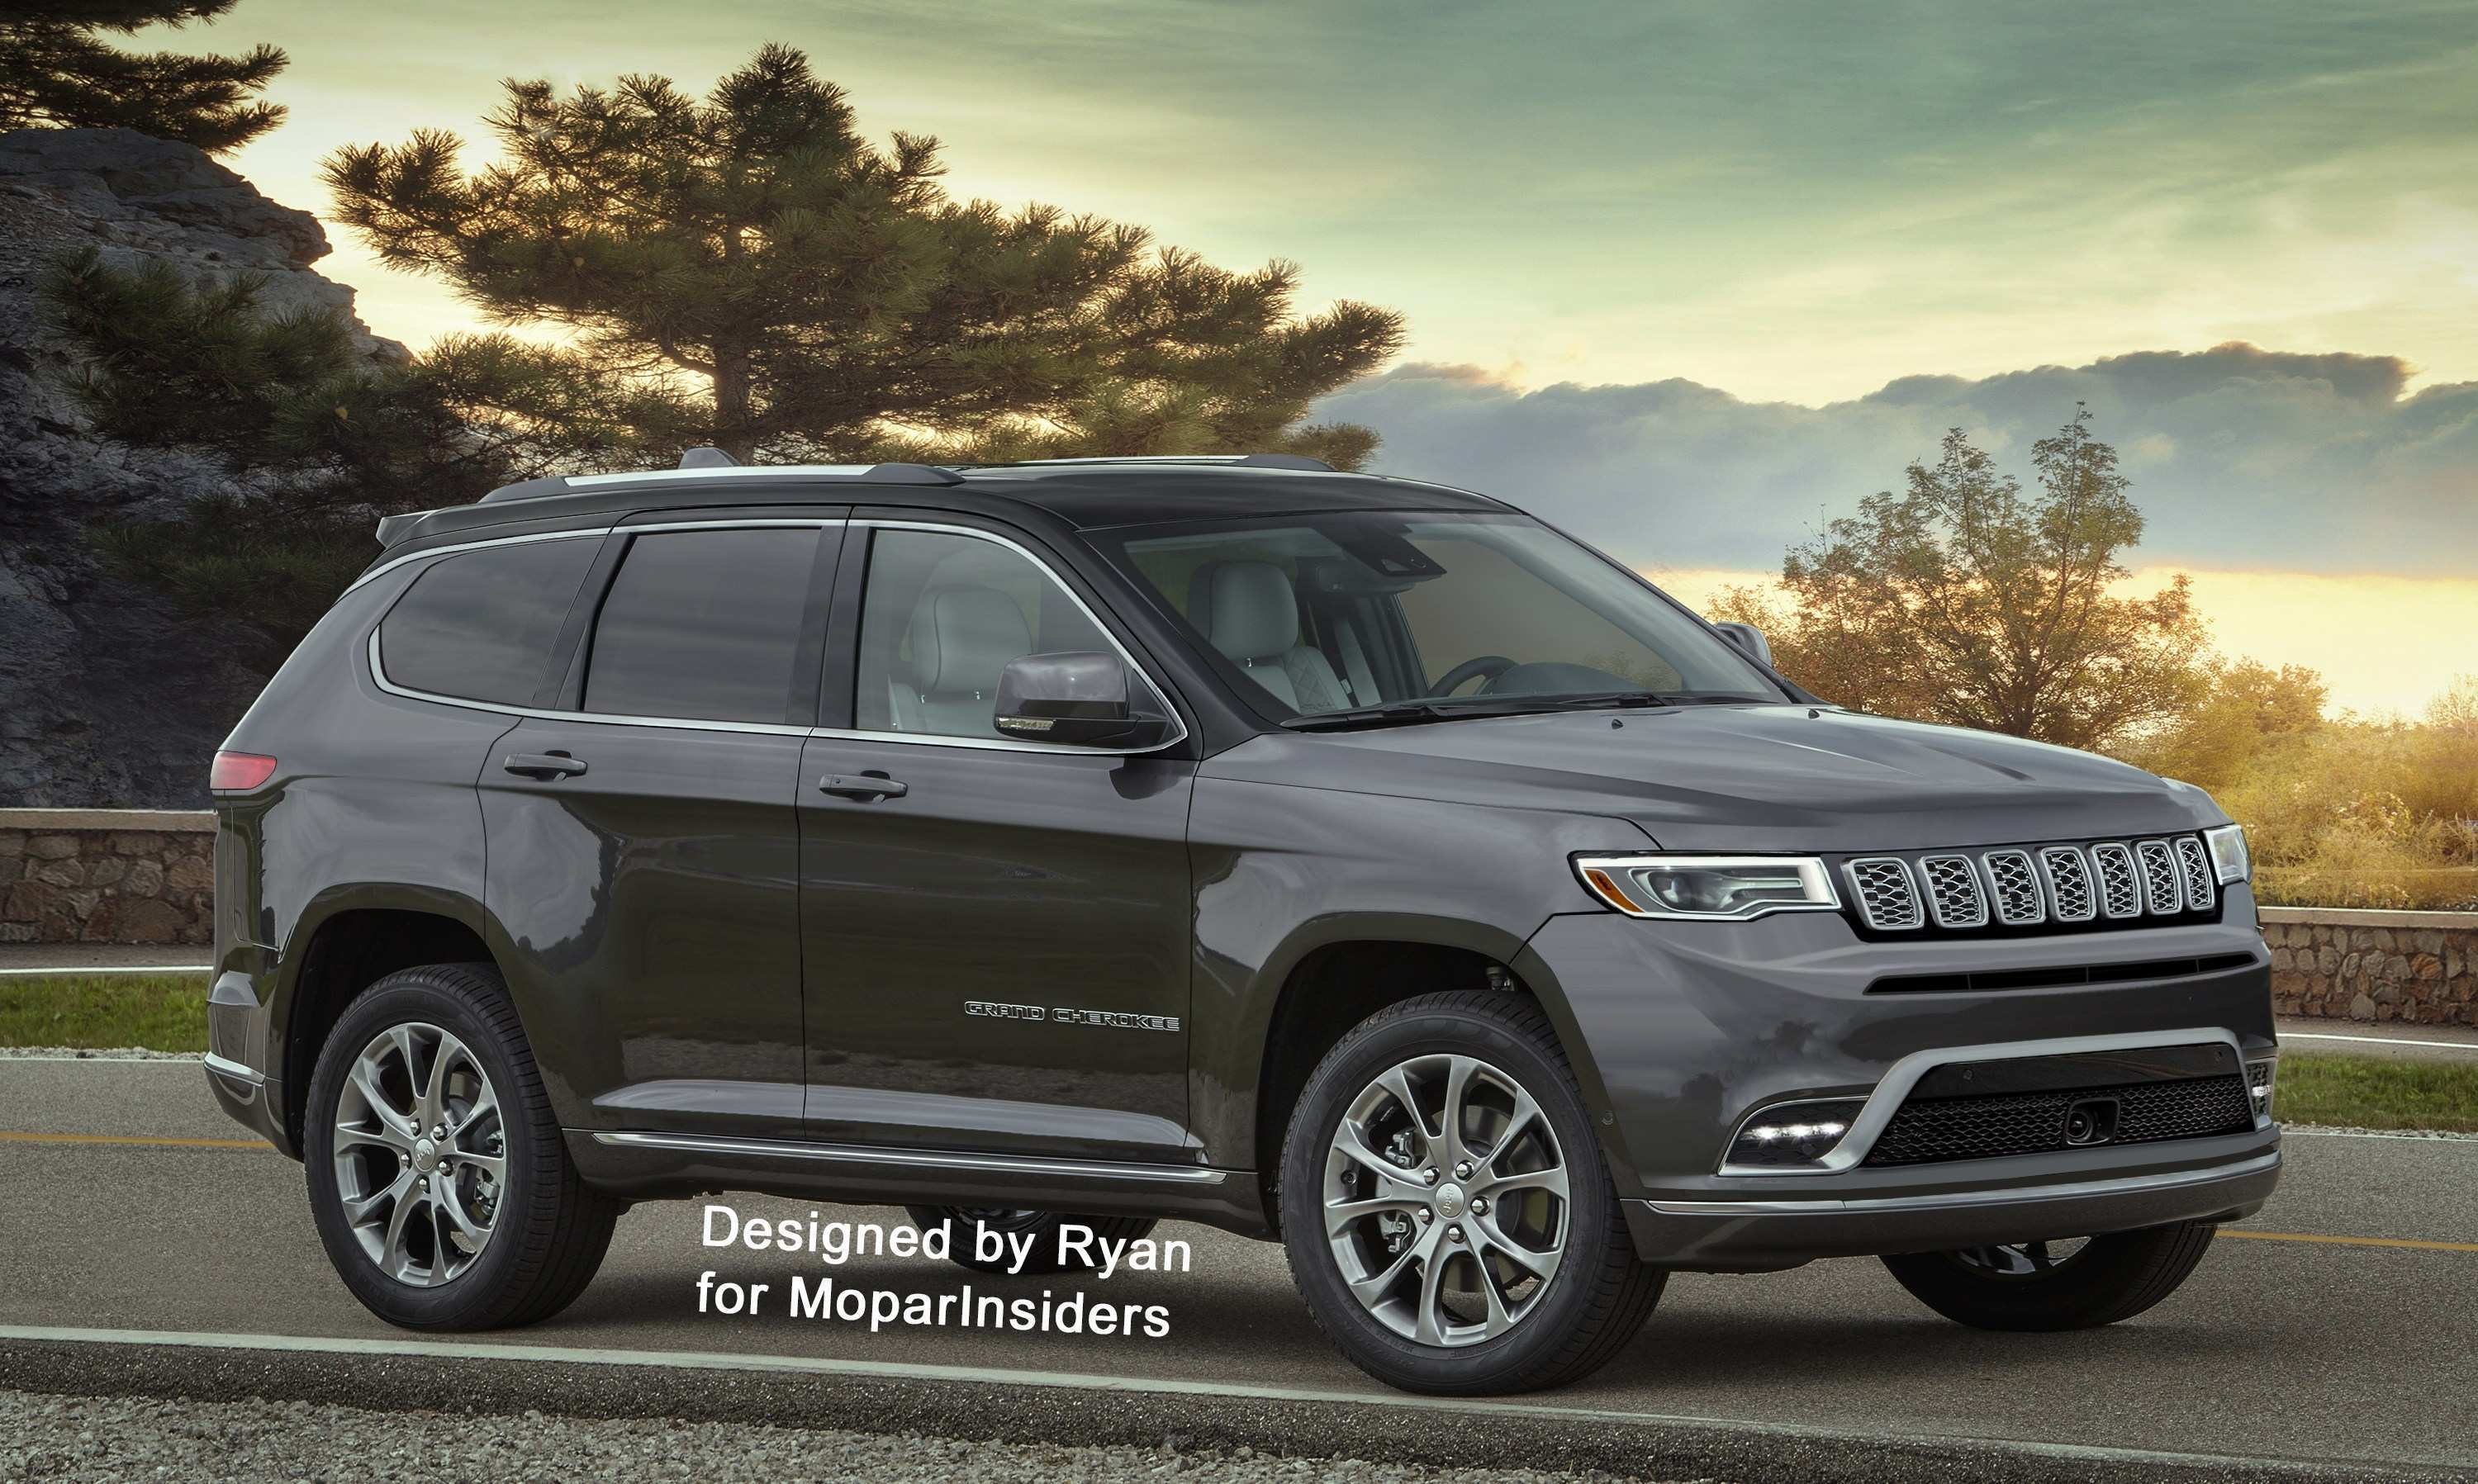 45 New Jeep Grand Cherokee Update 2020 Price Design And Review